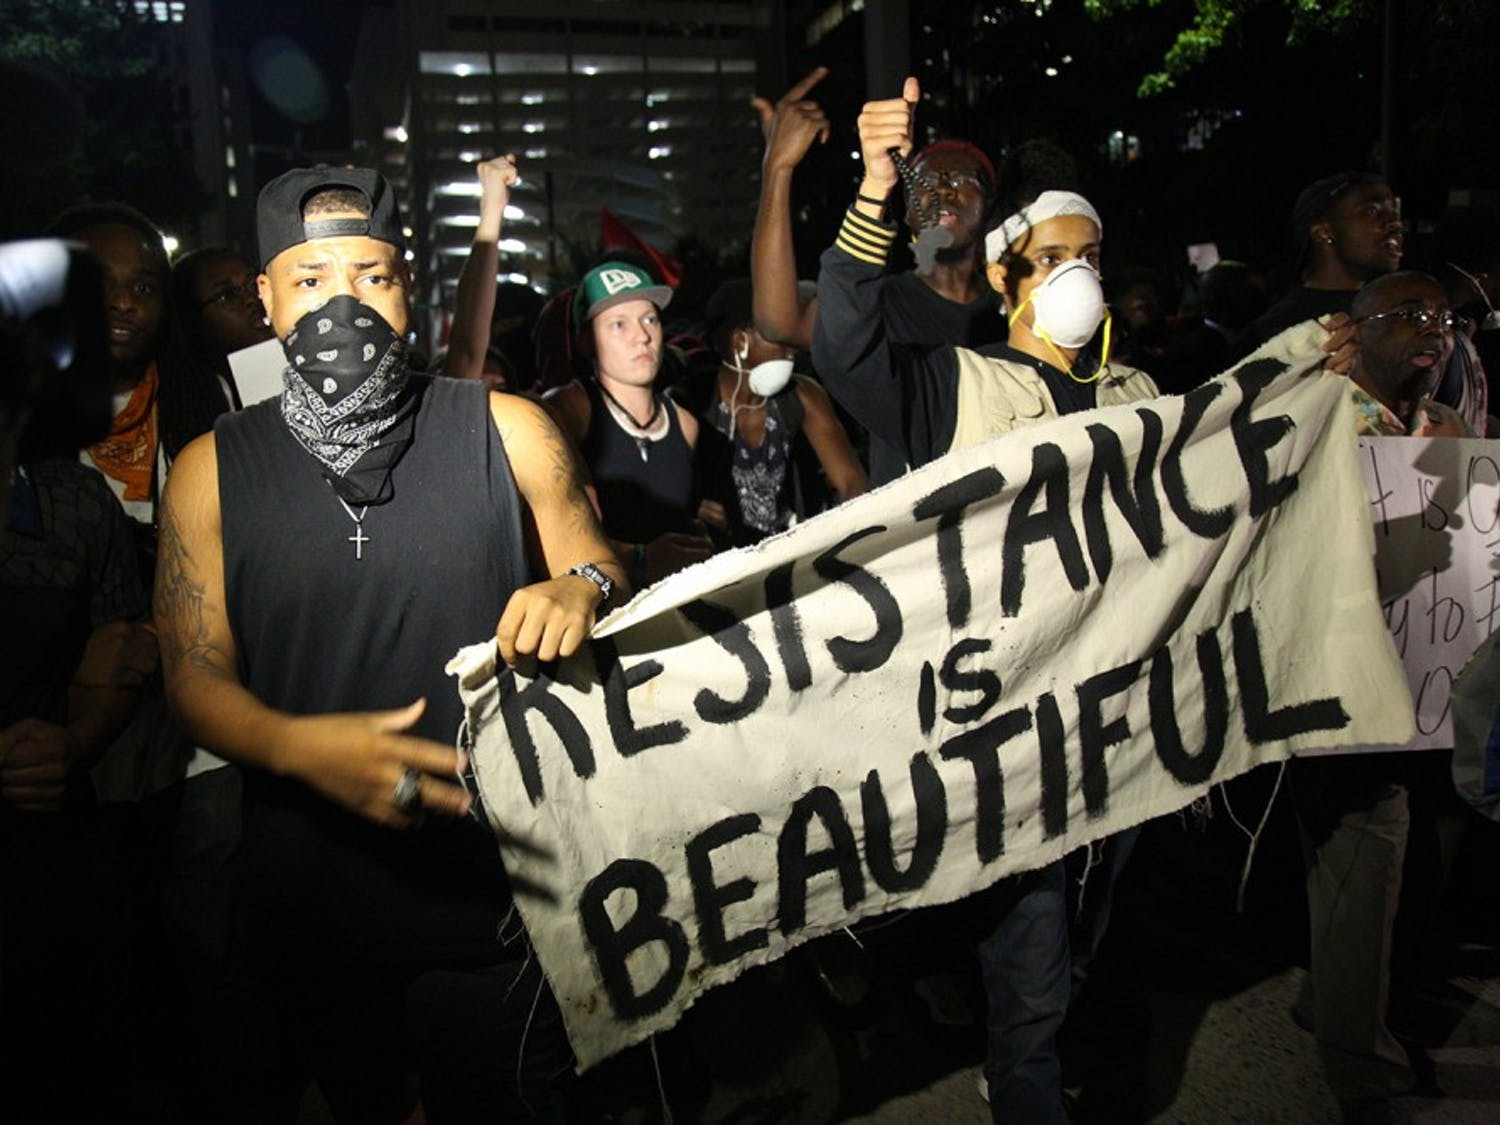 Protests continue in Charlotte in response to the fatal shooting of Keith Scott by a police officer.